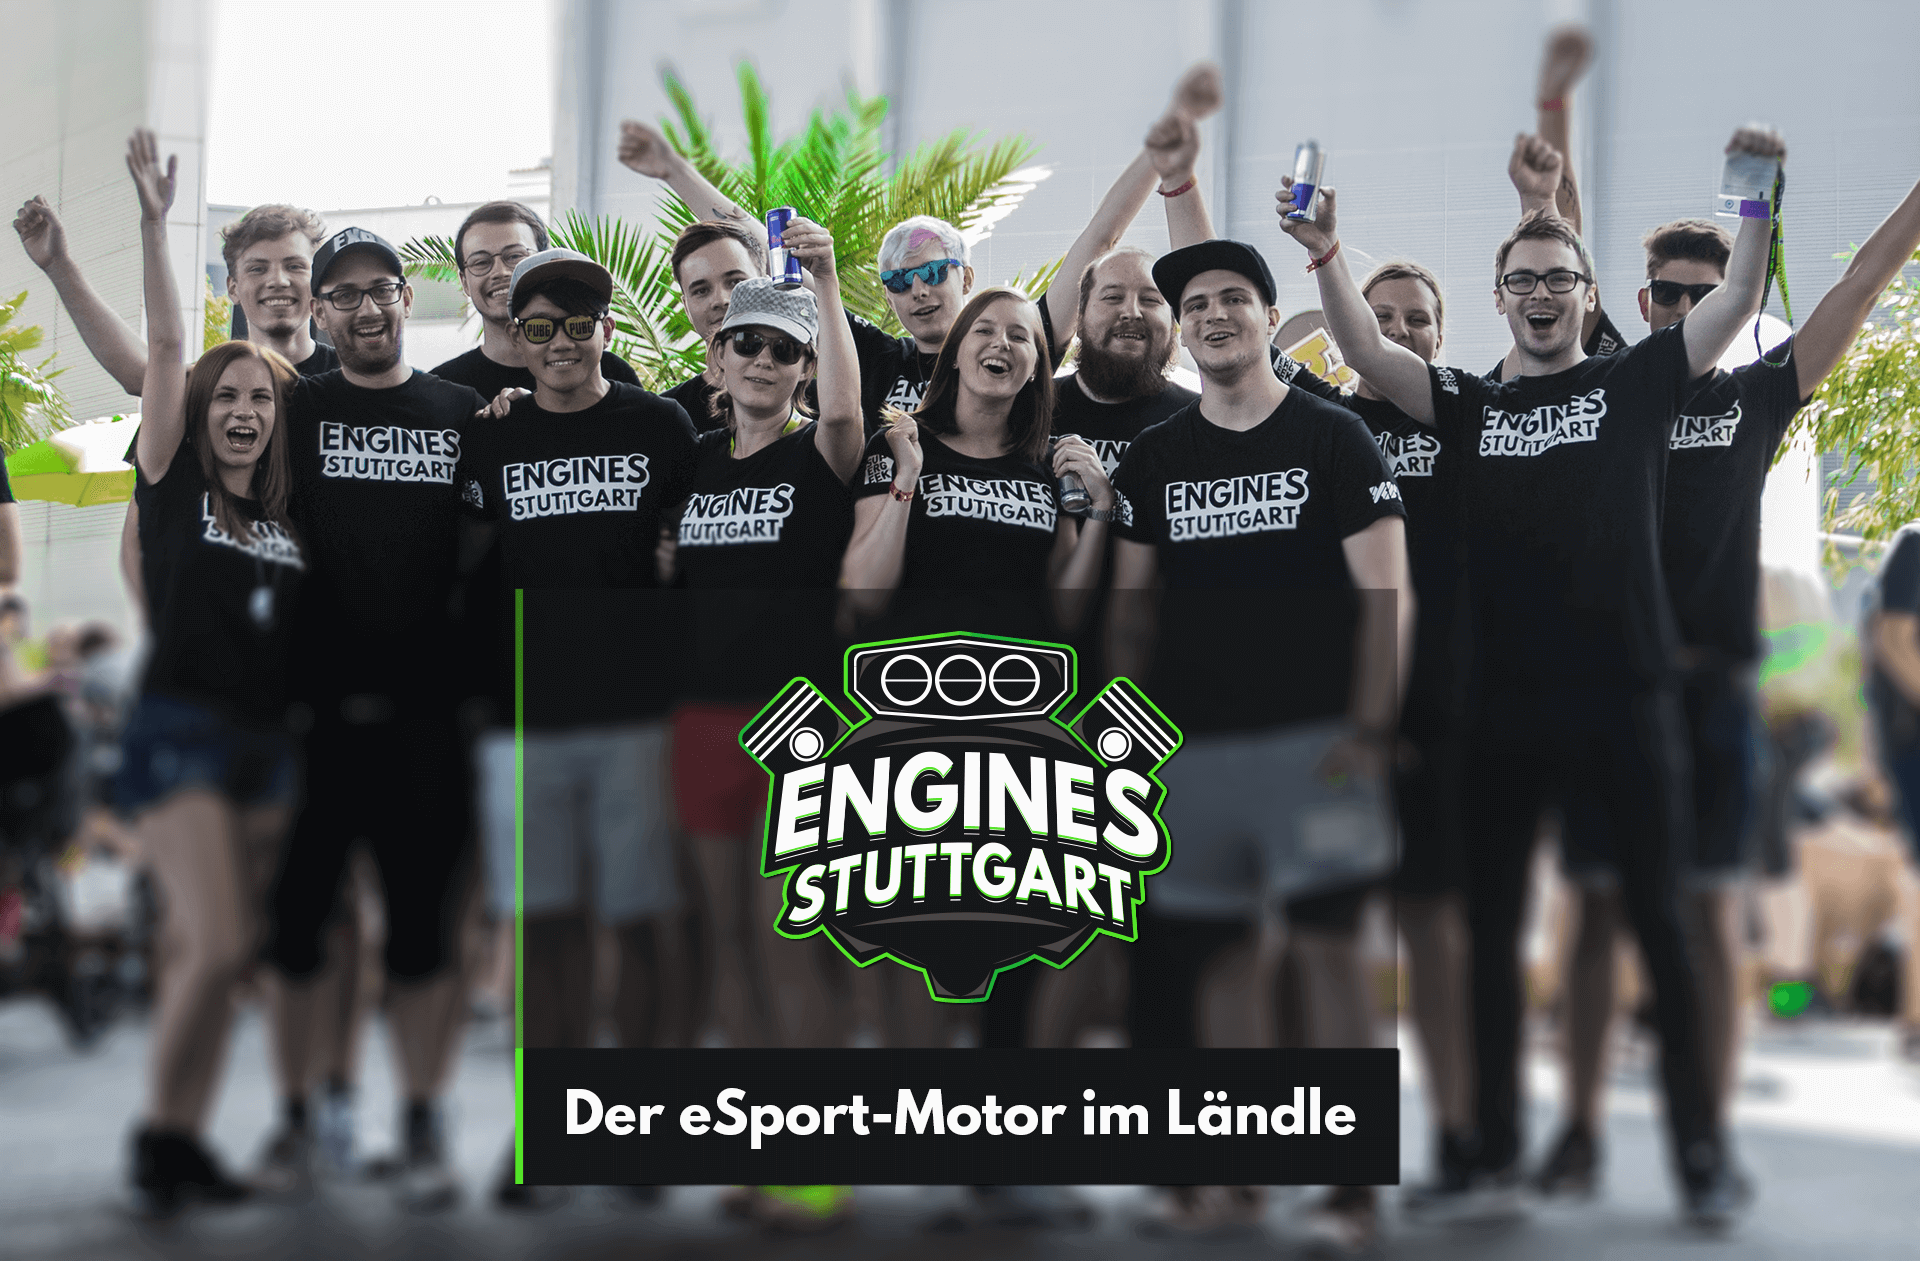 Engines Stuttgart Teamfoto